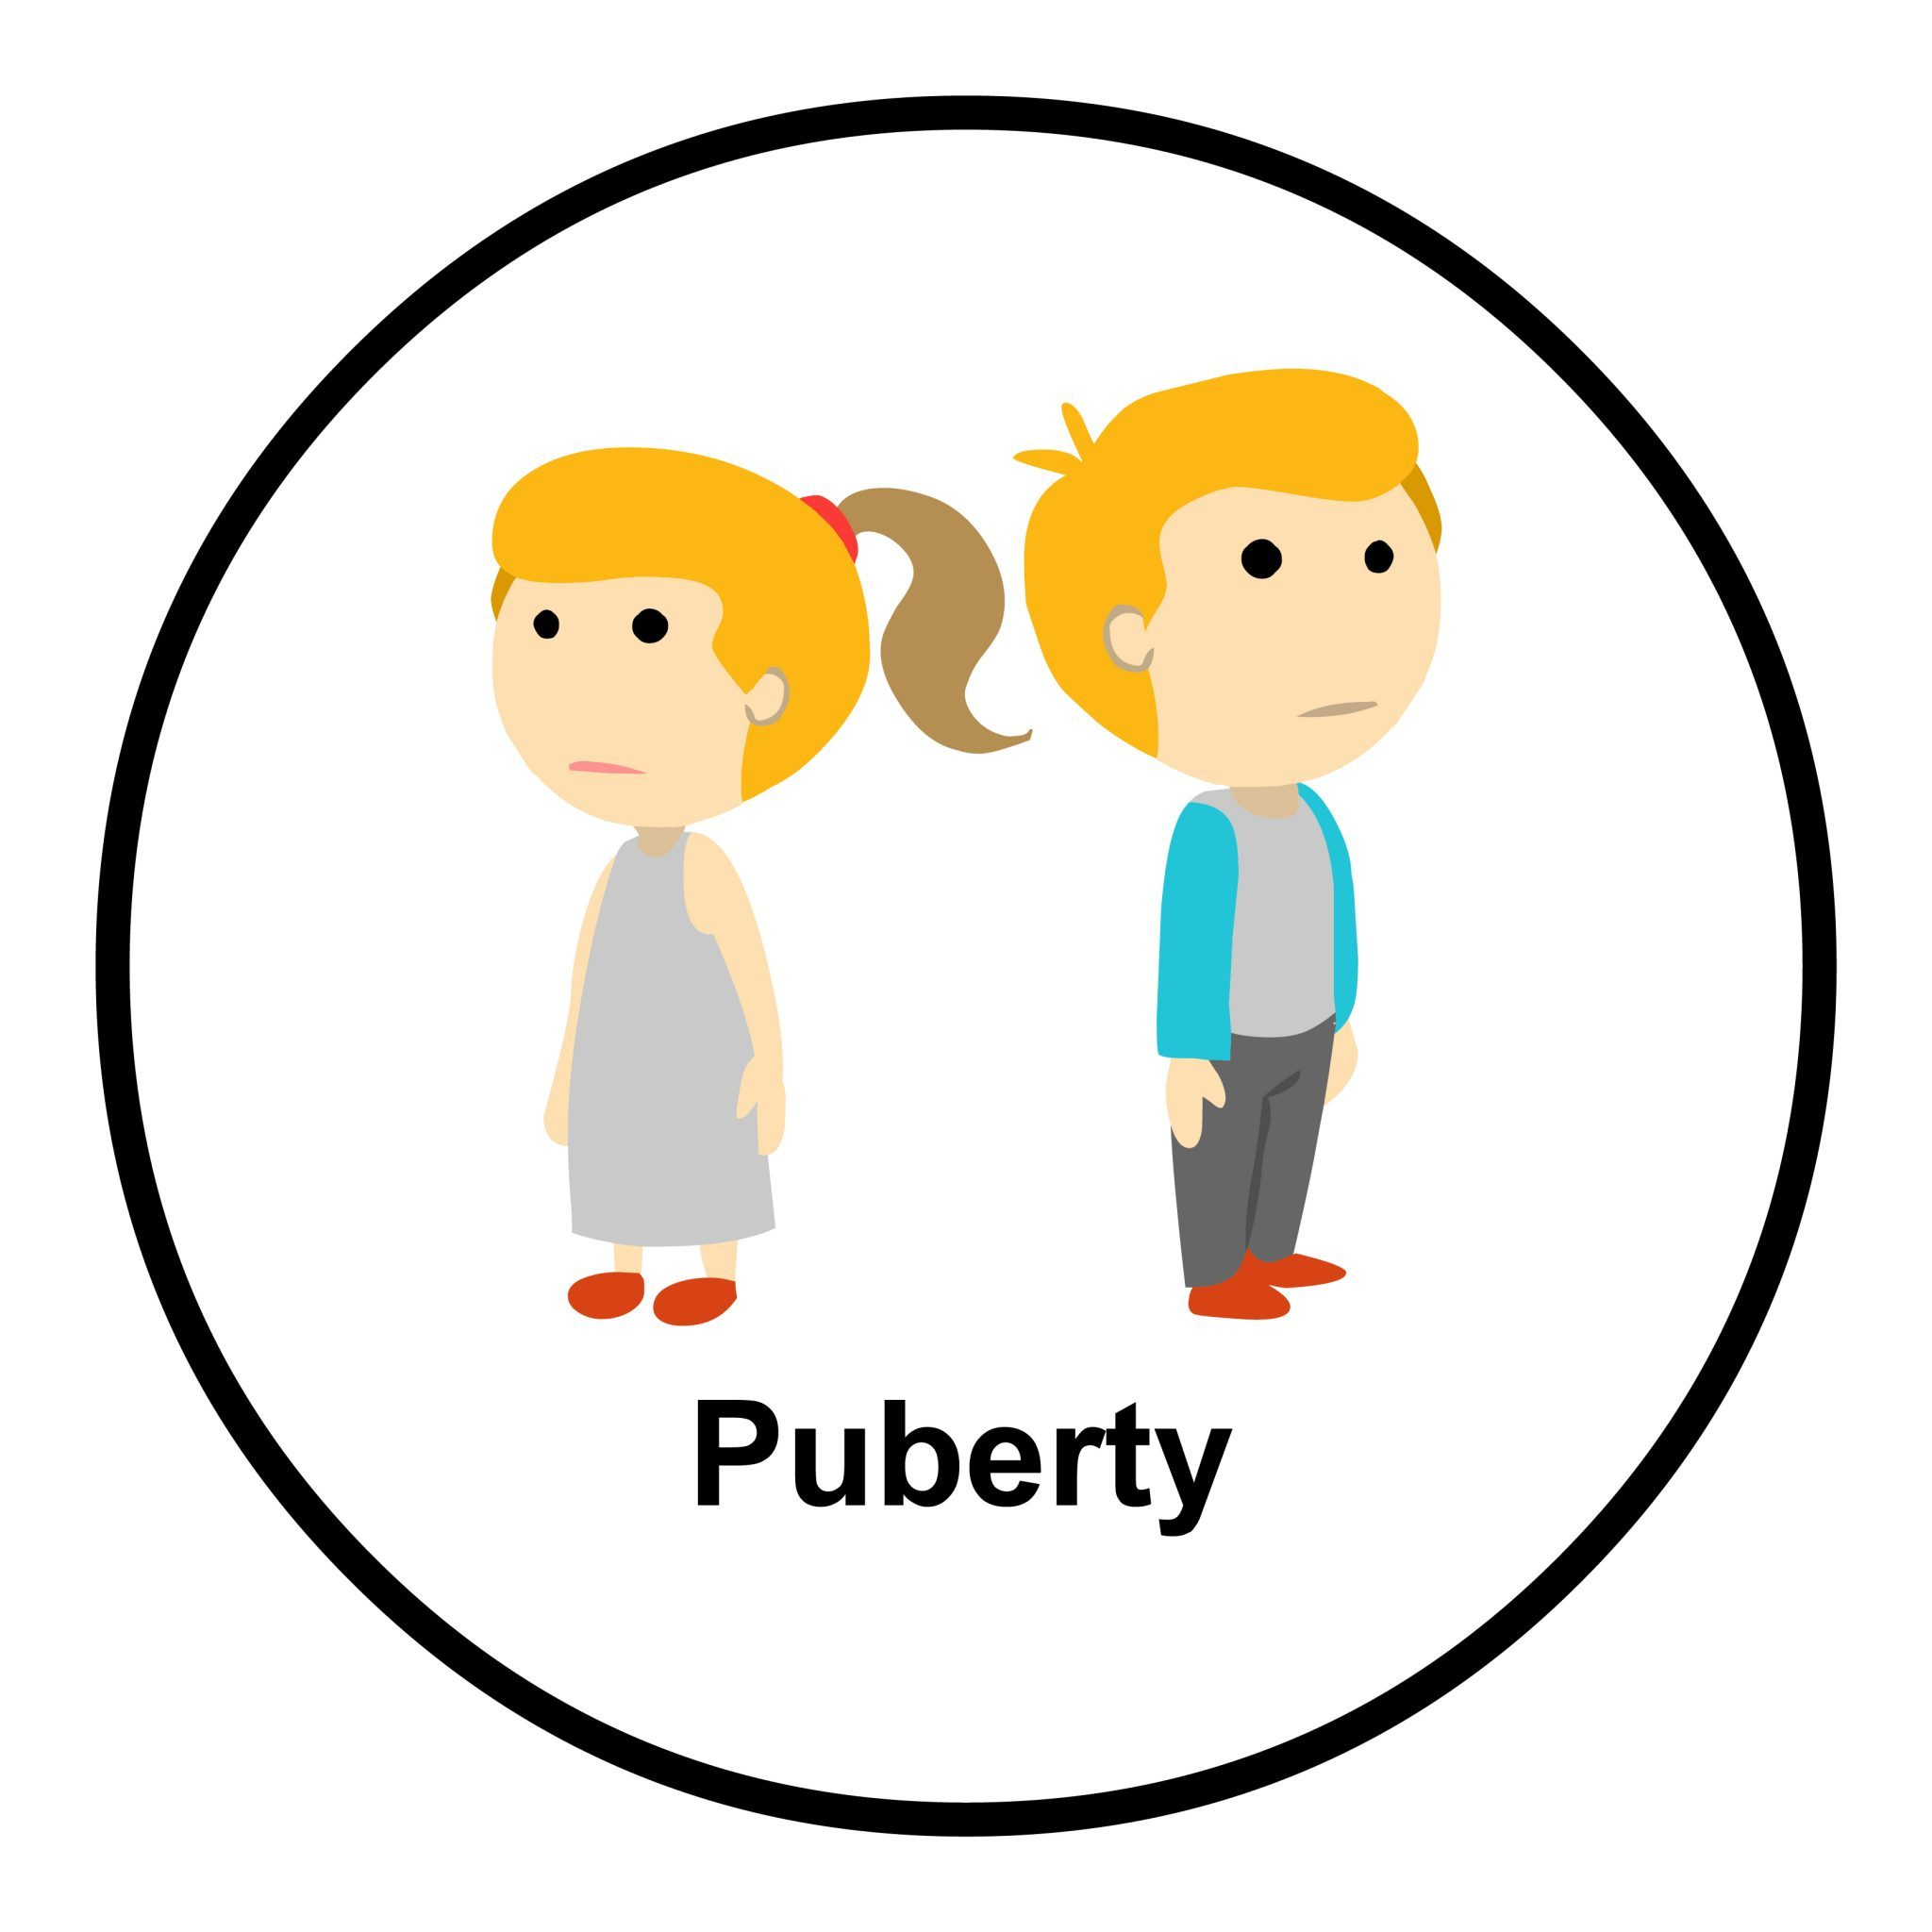 Puberty - Look Hear Australia, Allied Health and Educational Resources svg free